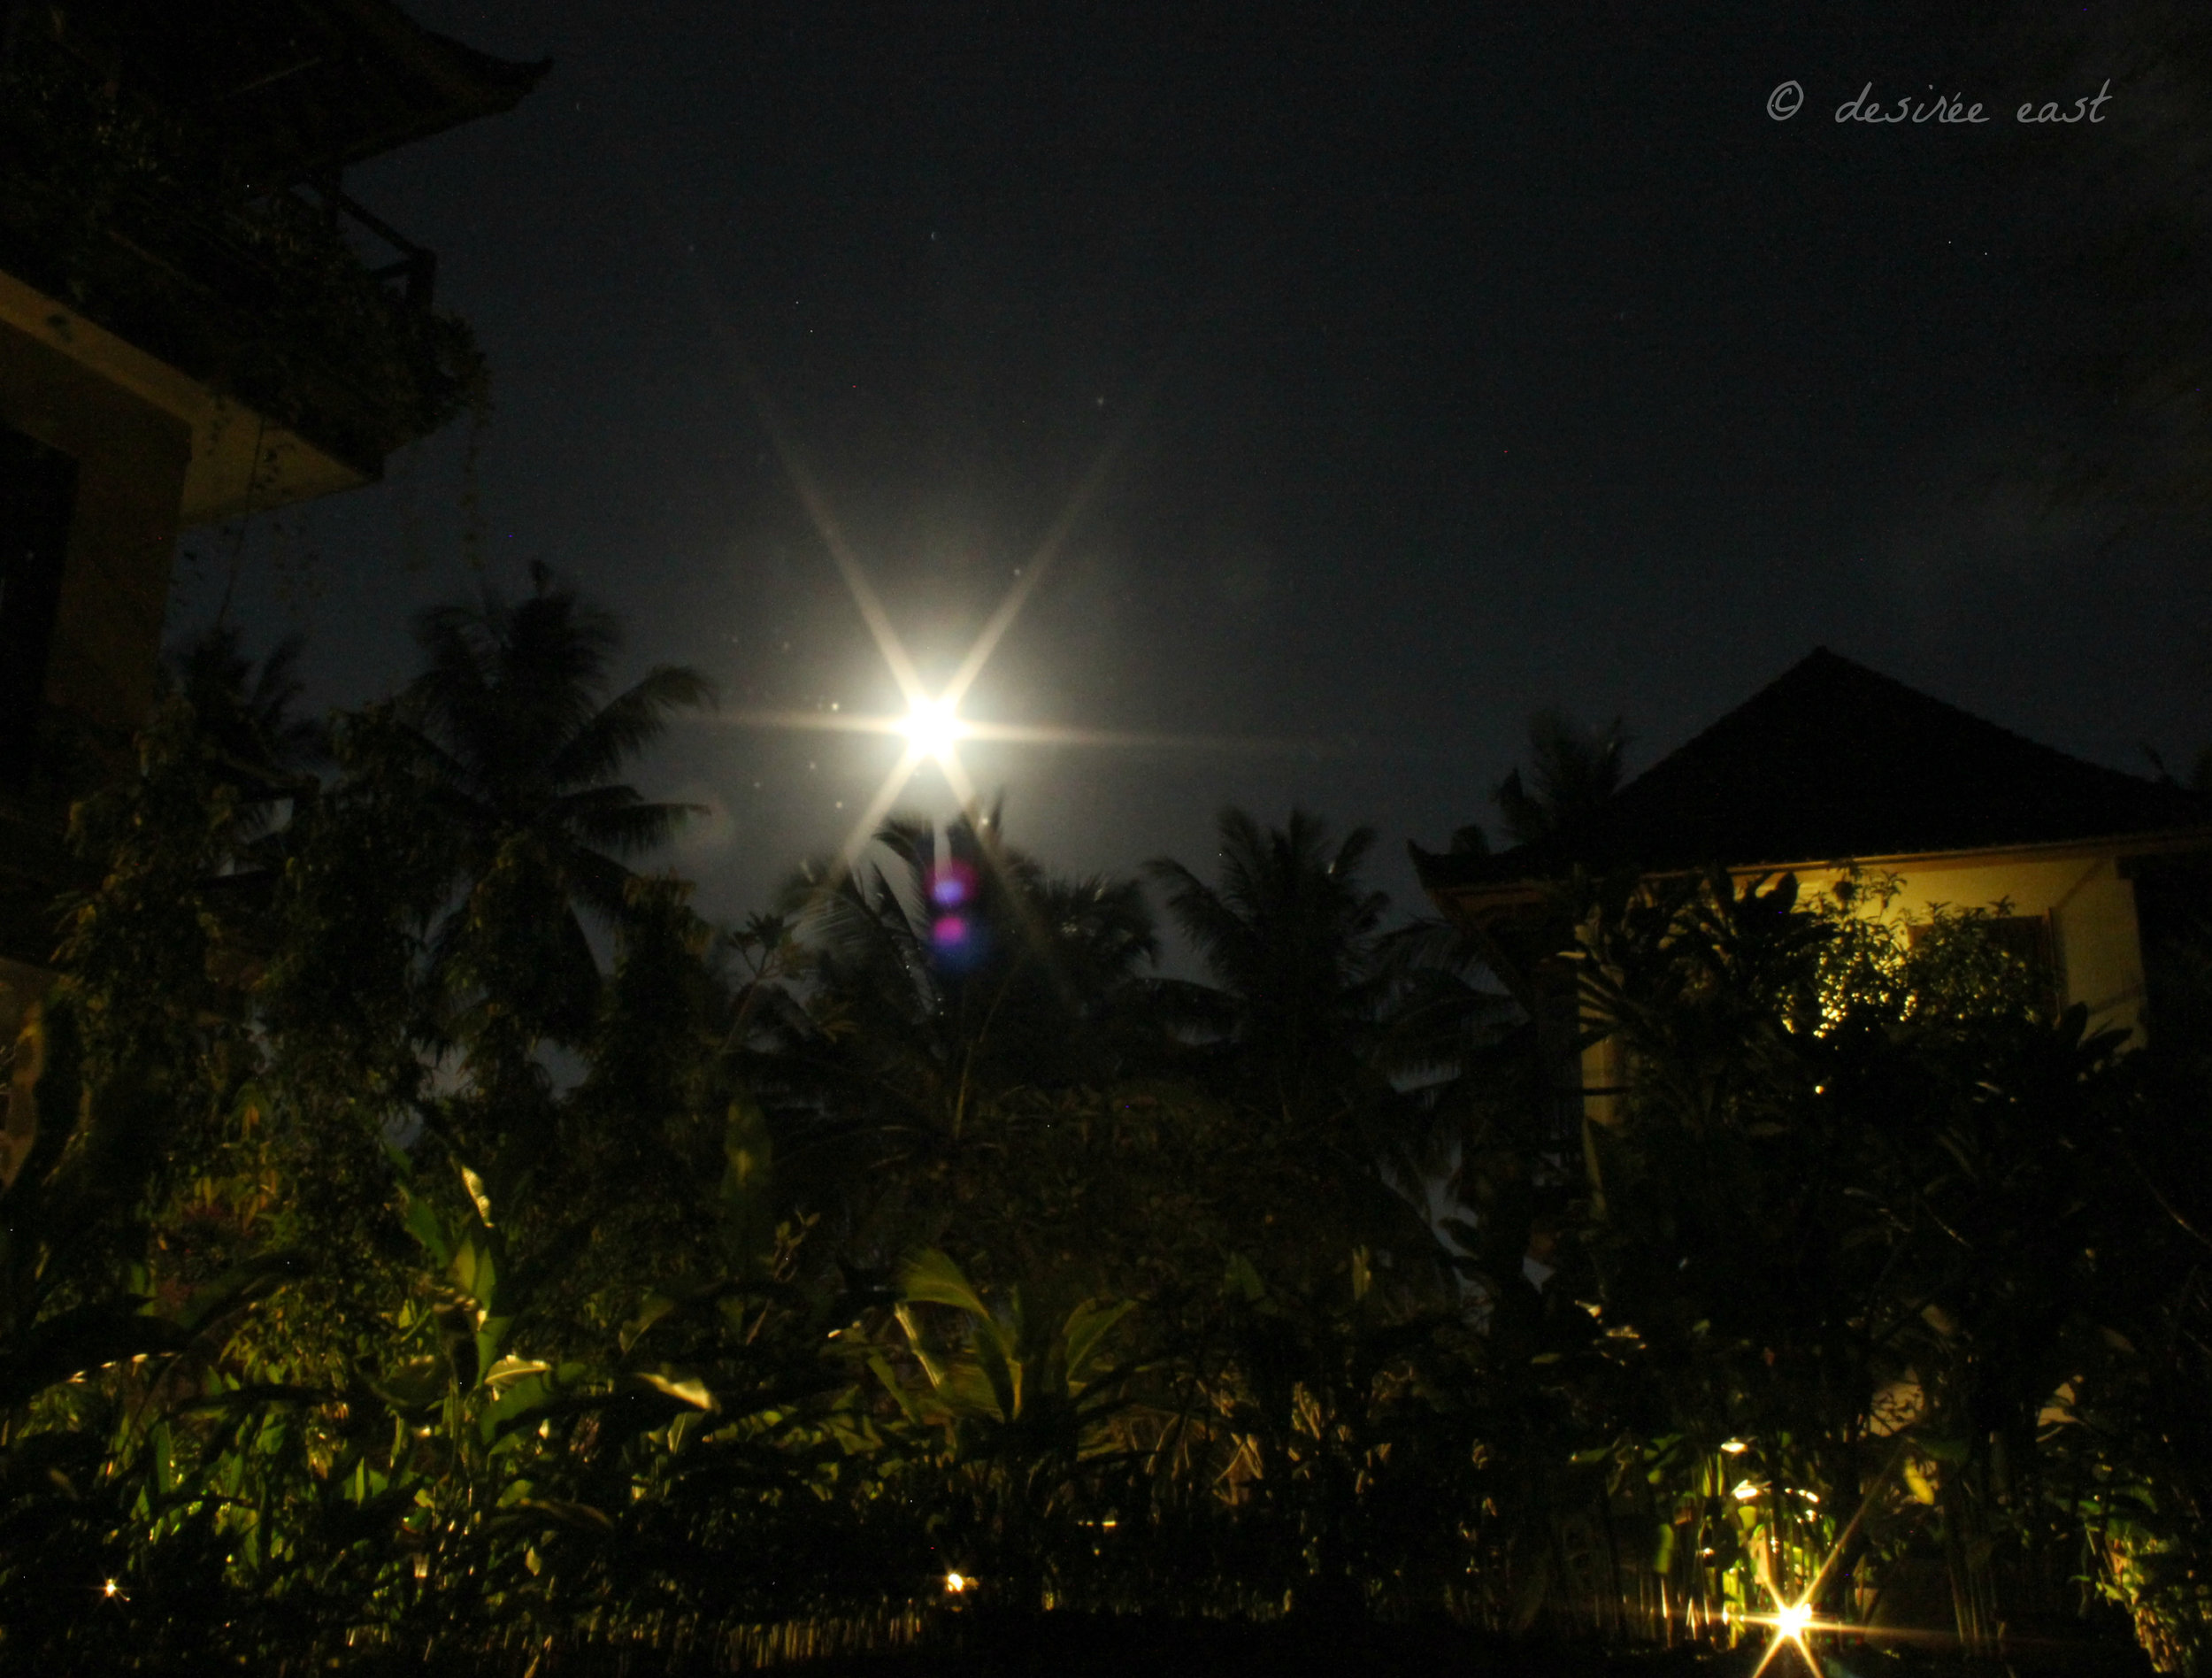 moonlit balinese night. ubud, bali, indonesia. photo by desiree east